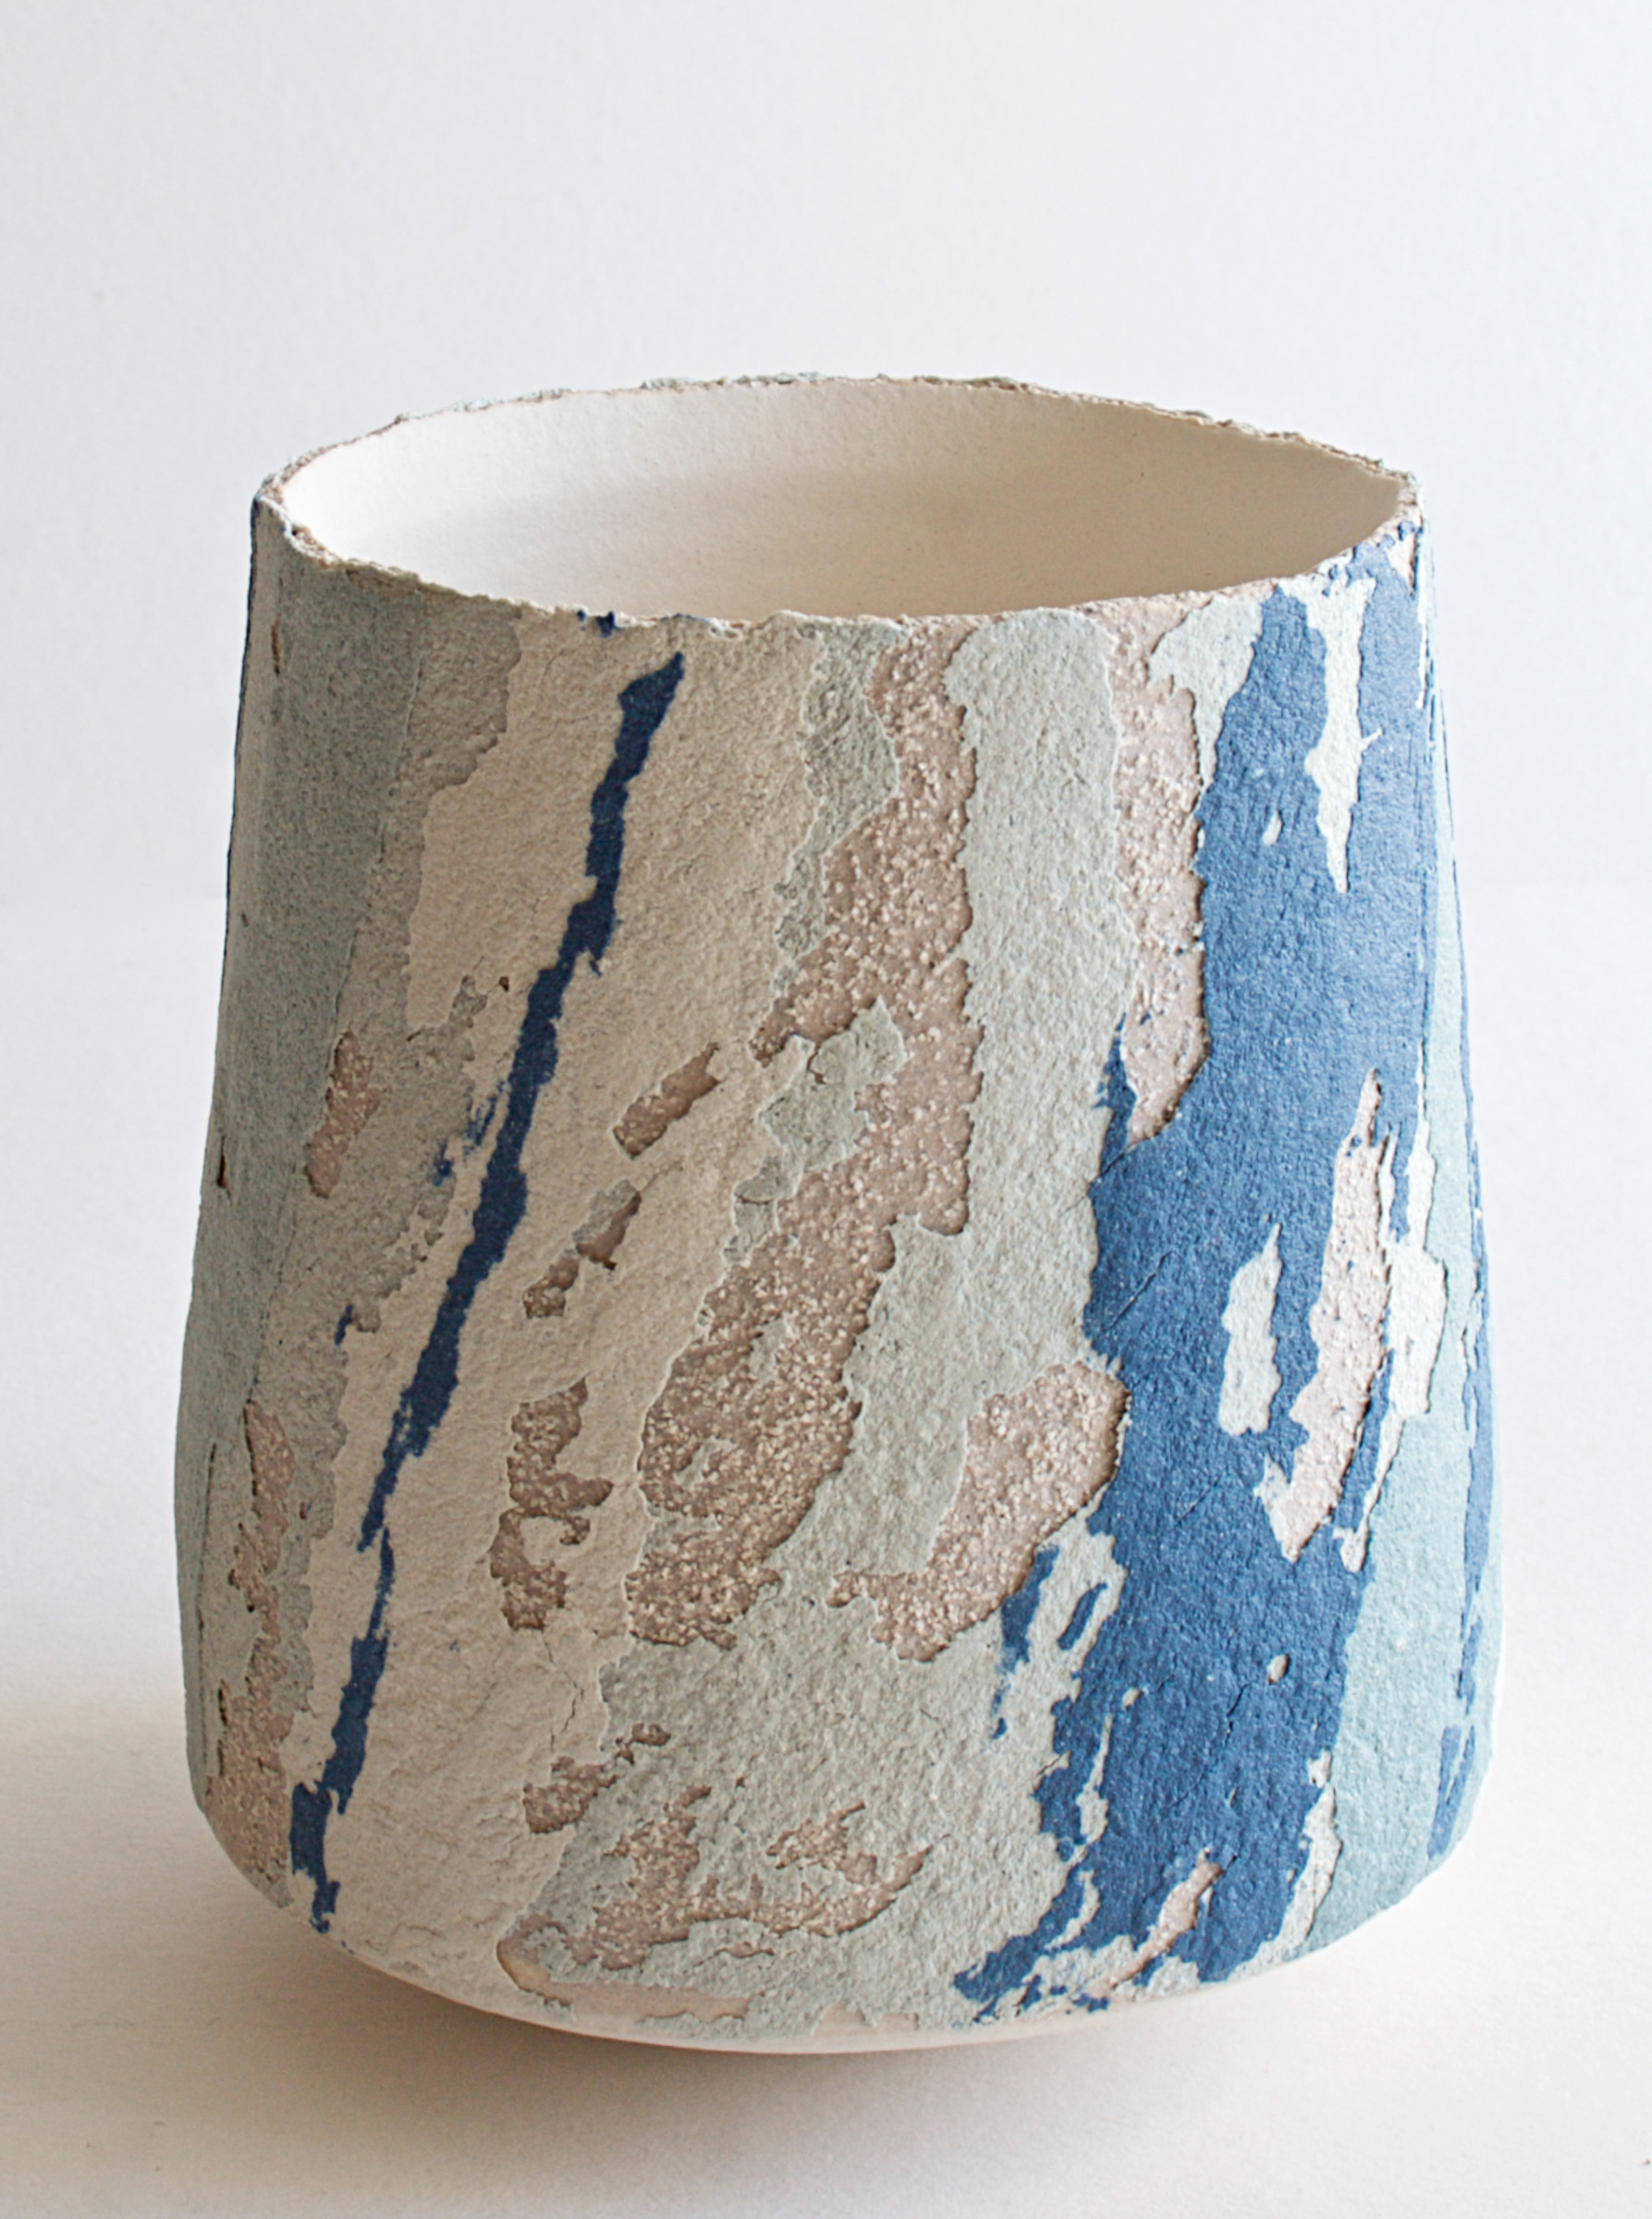 """<span class=""""link fancybox-details-link""""><a href=""""/artists/79-clare-conrad/works/6931-clare-conrad-tapering-cylinder-2020/"""">View Detail Page</a></span><div class=""""artist""""><strong>Clare Conrad</strong></div> <div class=""""title""""><em>Tapering cylinder</em>, 2020</div> <div class=""""medium"""">Stoneware</div> <div class=""""dimensions"""">h. 10.5 cm</div><div class=""""price"""">£132.00</div><div class=""""copyright_line"""">Copyright The Artist</div>"""